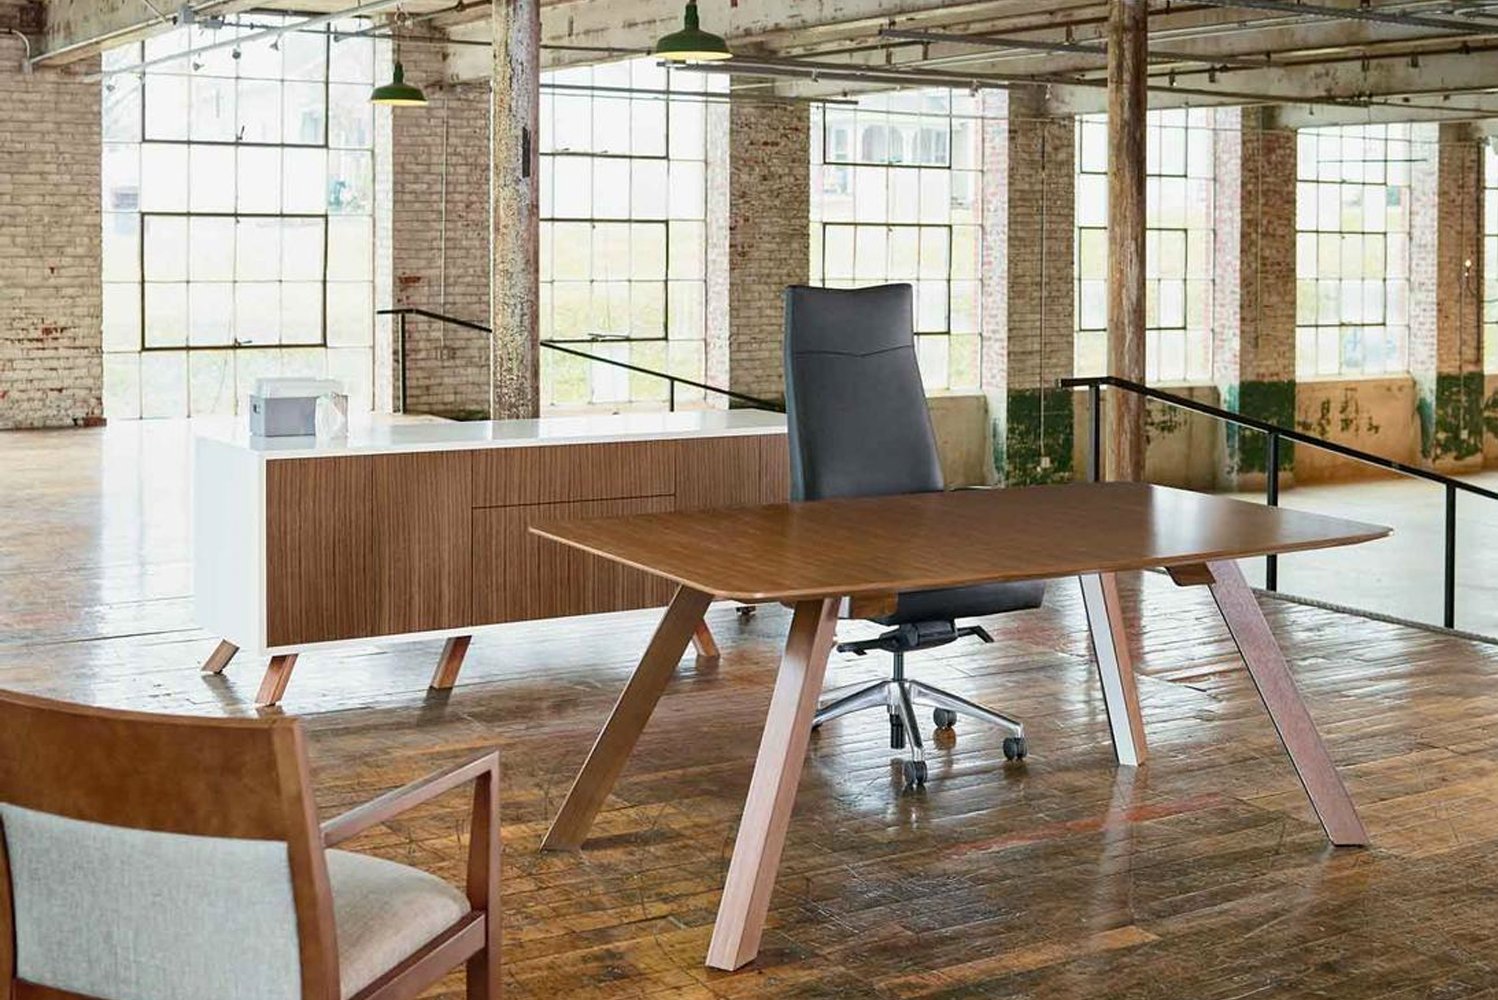 Each desk top is available in a number of materials, including wood, stone and painted glass, and the metal legs are covered with magnetized walnut veneer.